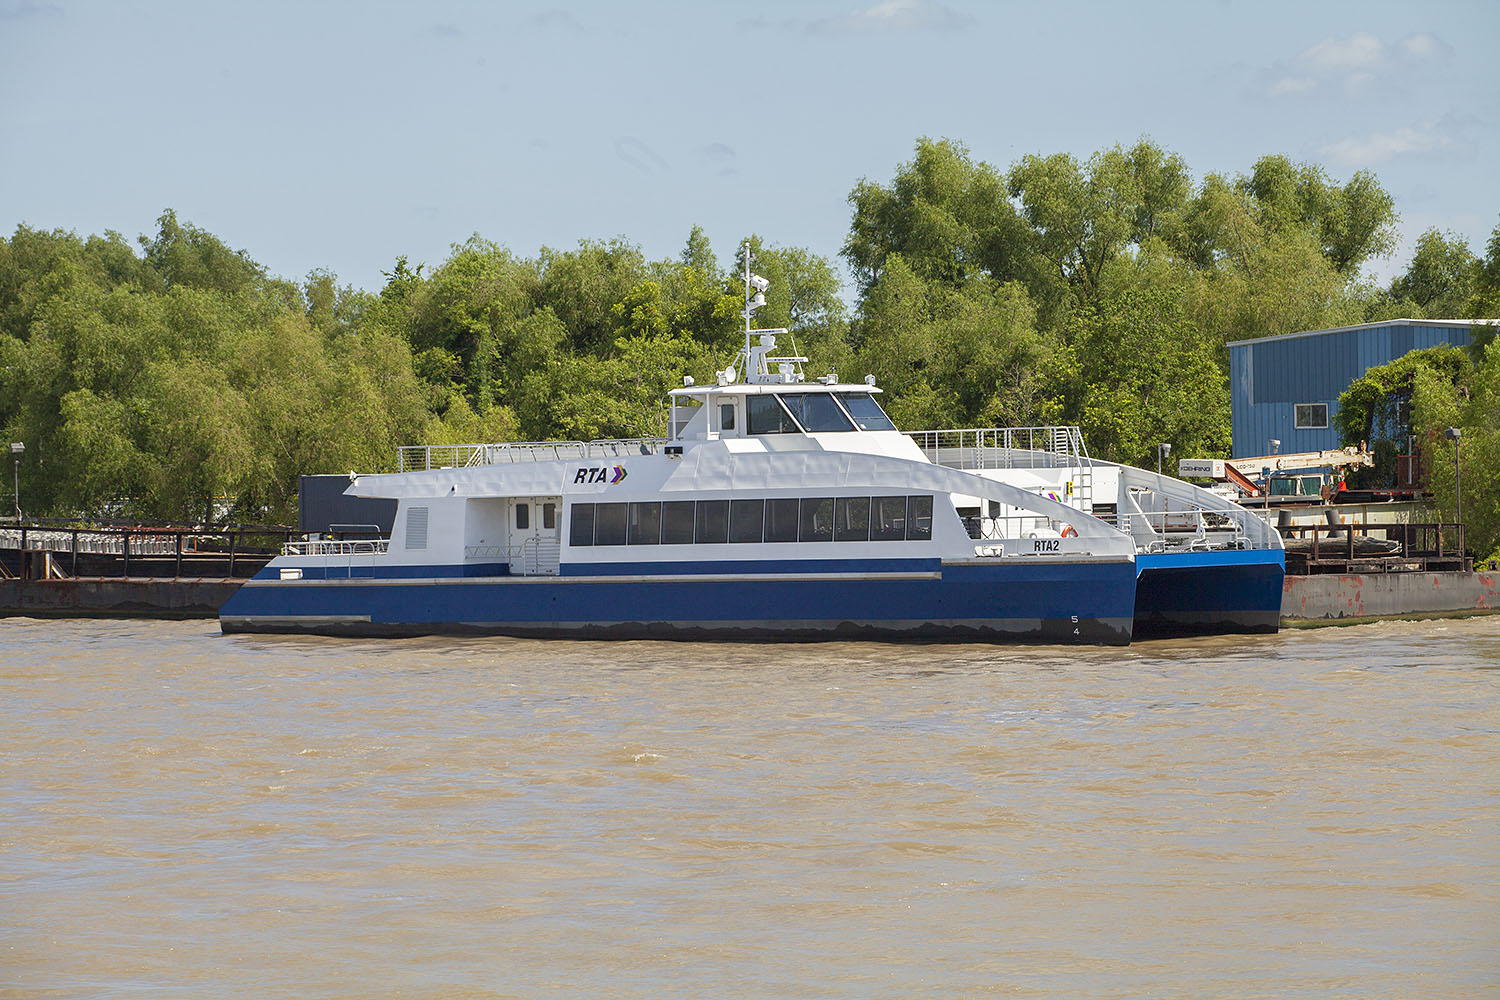 New ferry RTA 1. (Photo by Frank McCormack)